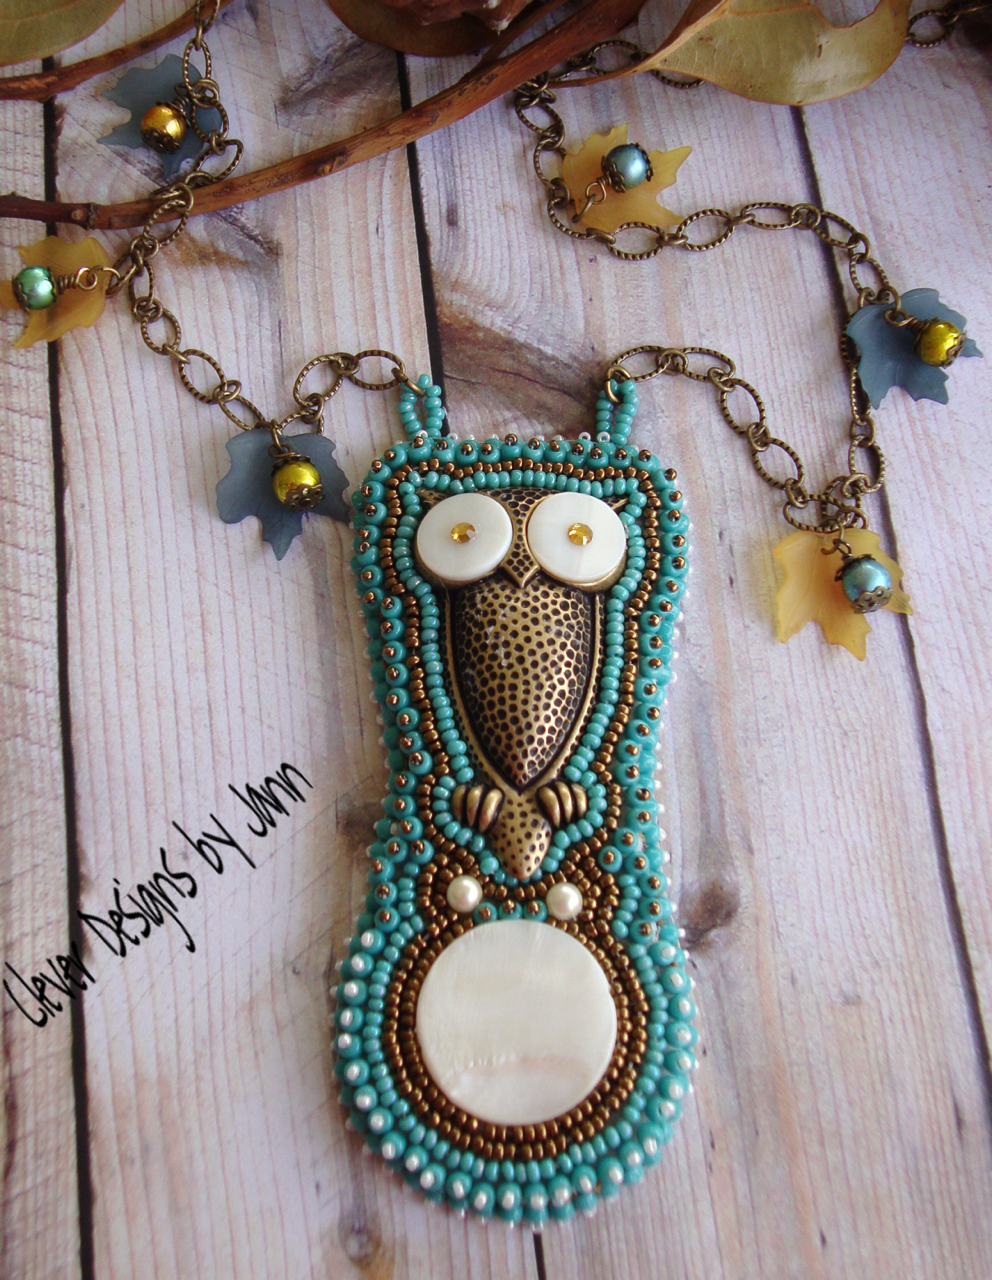 Owl Beaded Necklace .. A cute brass owl with eyes of mother of pearl and a large mother of pearl cab are the focal beads for this sweet necklace .. 3 different sizes of seed beads, beads & pearls, lucite leaves, chain, and flat back crystals are also used to create this necklace .. FOR SALE .. $75.00